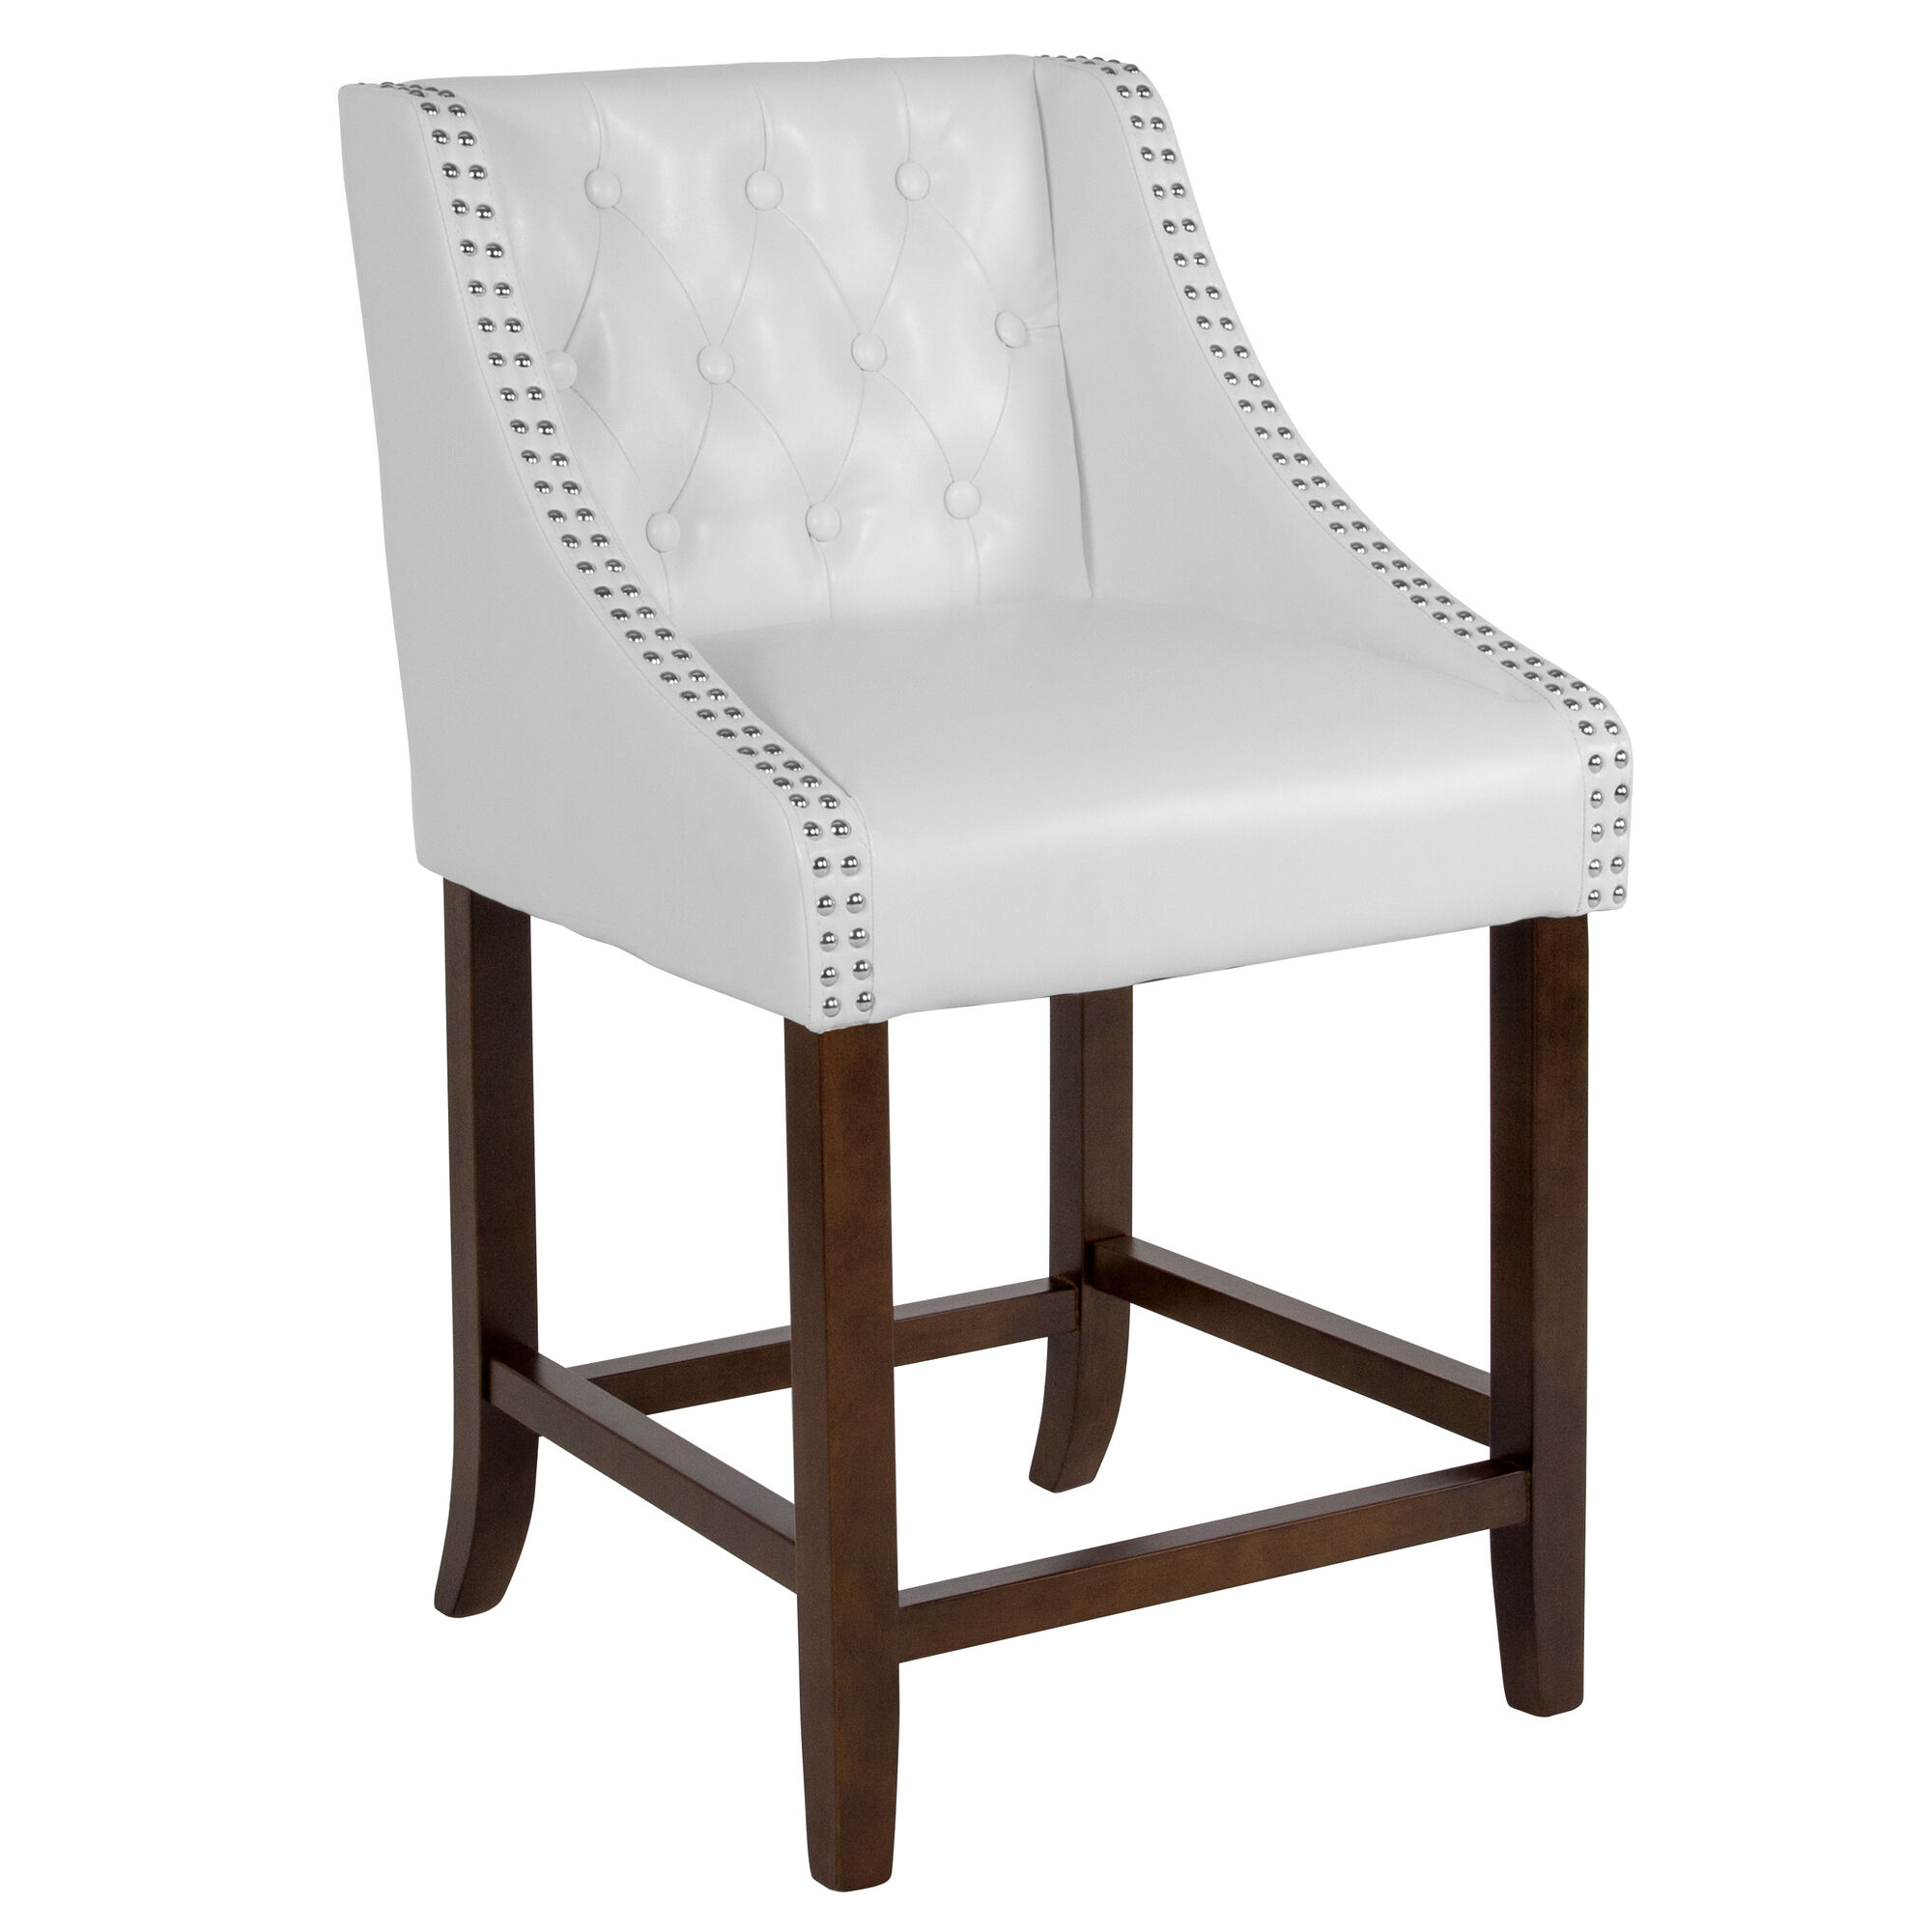 Incredible Carmel Series 24 High Transitional Tufted Walnut Counter Height Stool With Accent Nail Trim In White Leather Forskolin Free Trial Chair Design Images Forskolin Free Trialorg